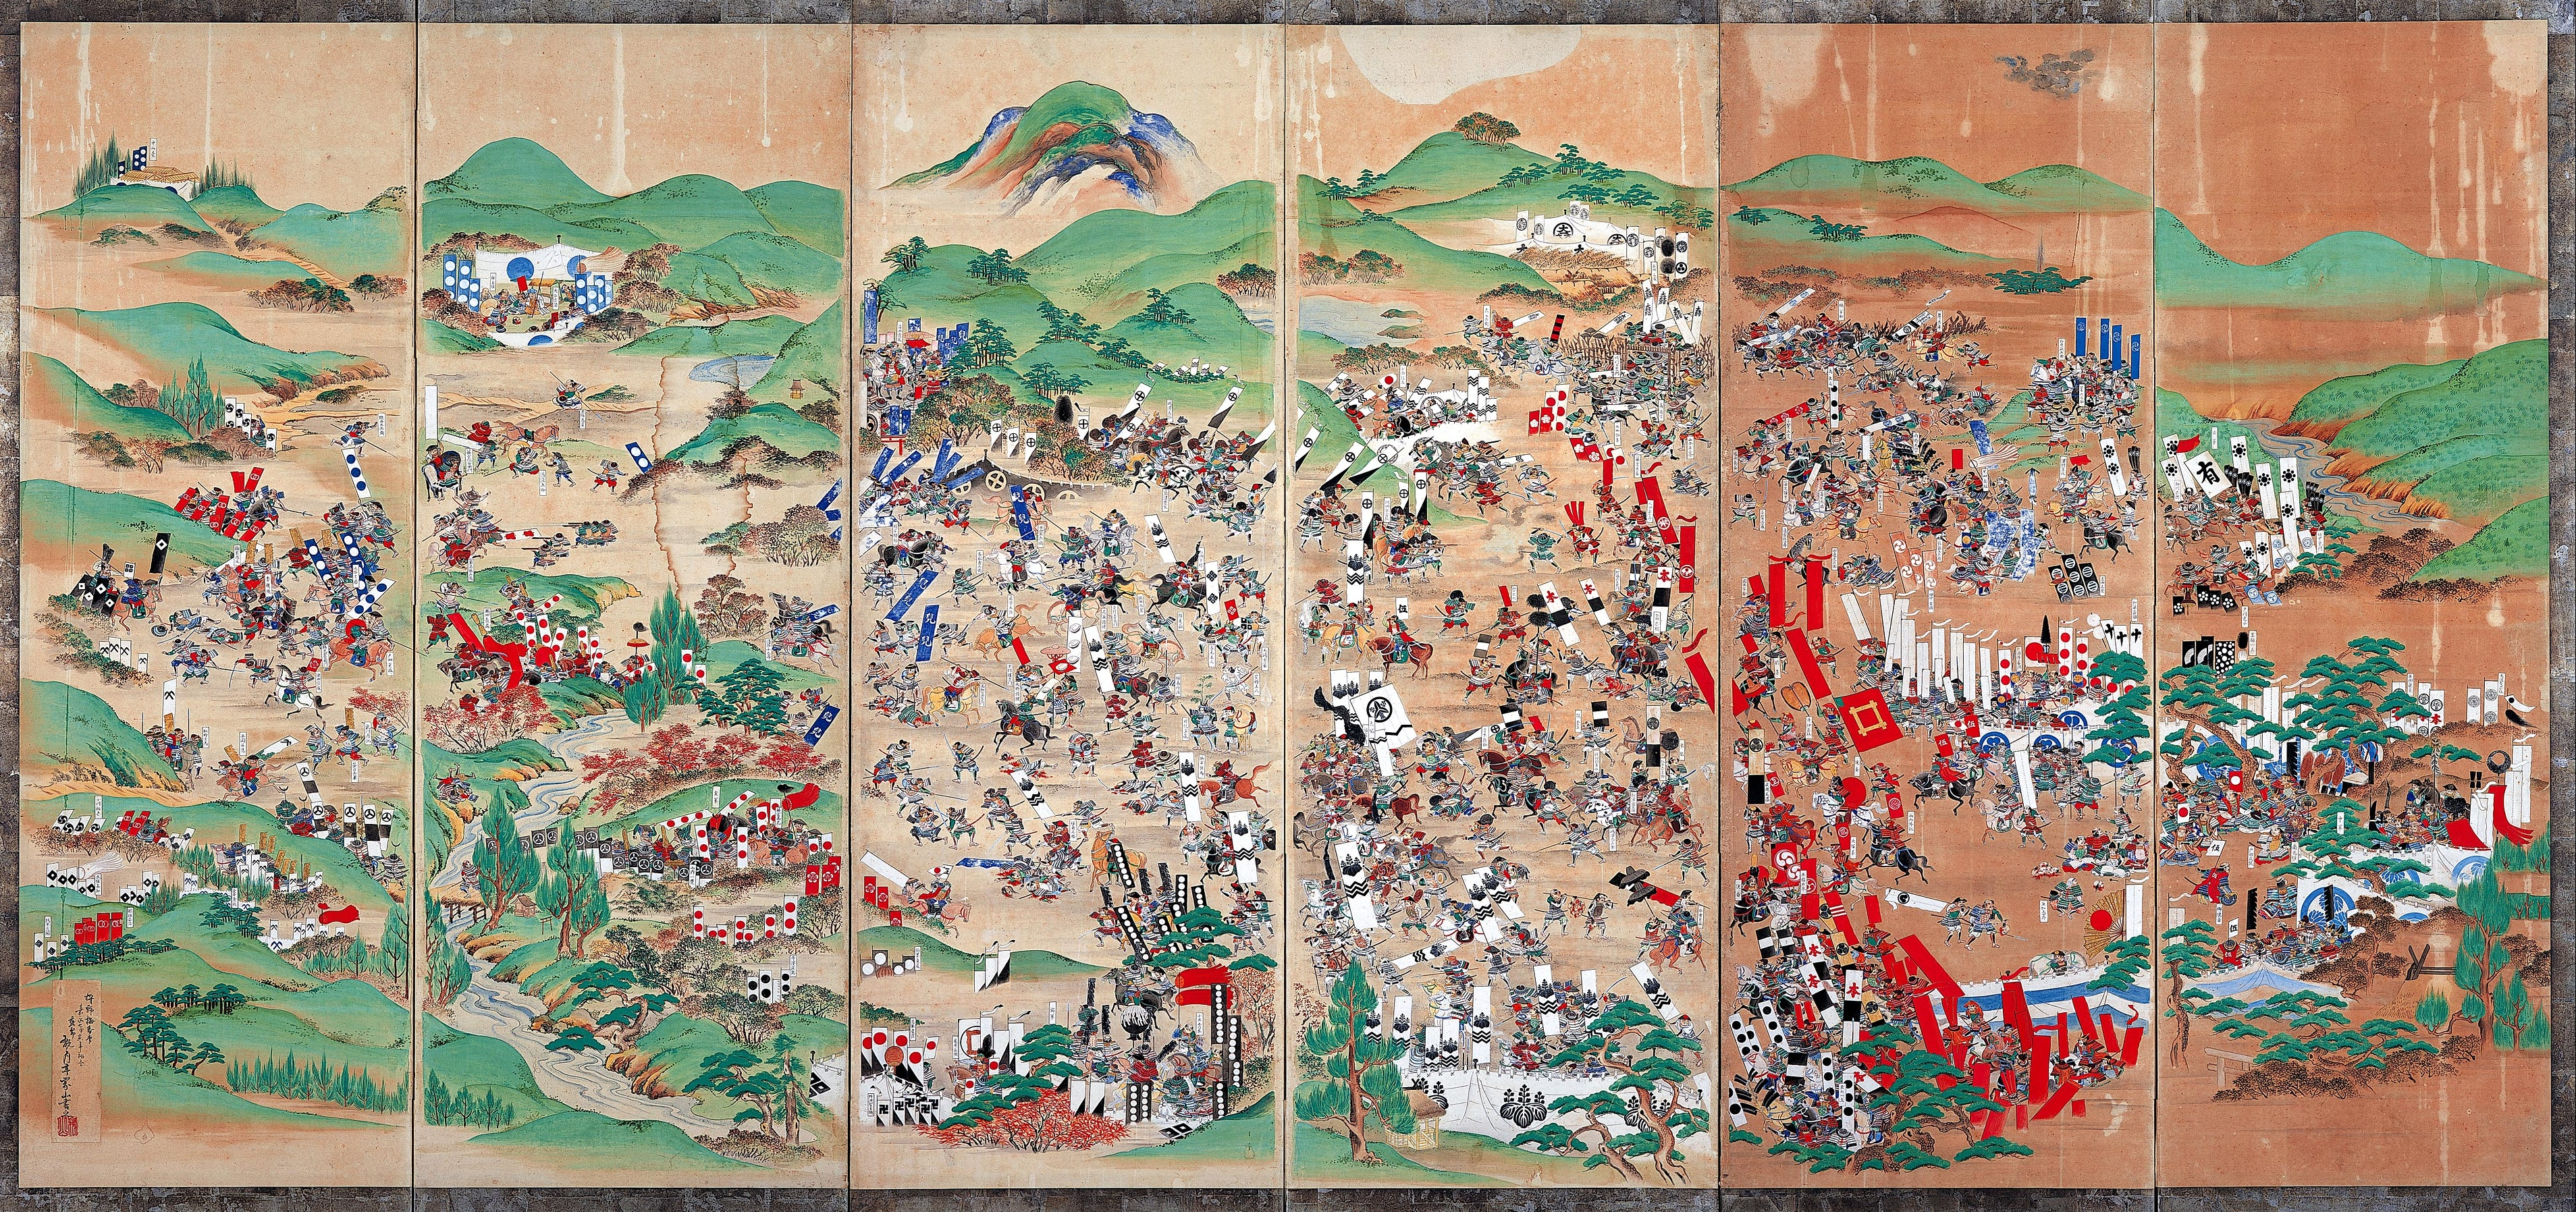 Historic use of nobori banners | 1600s Battle of Sekigahara screen